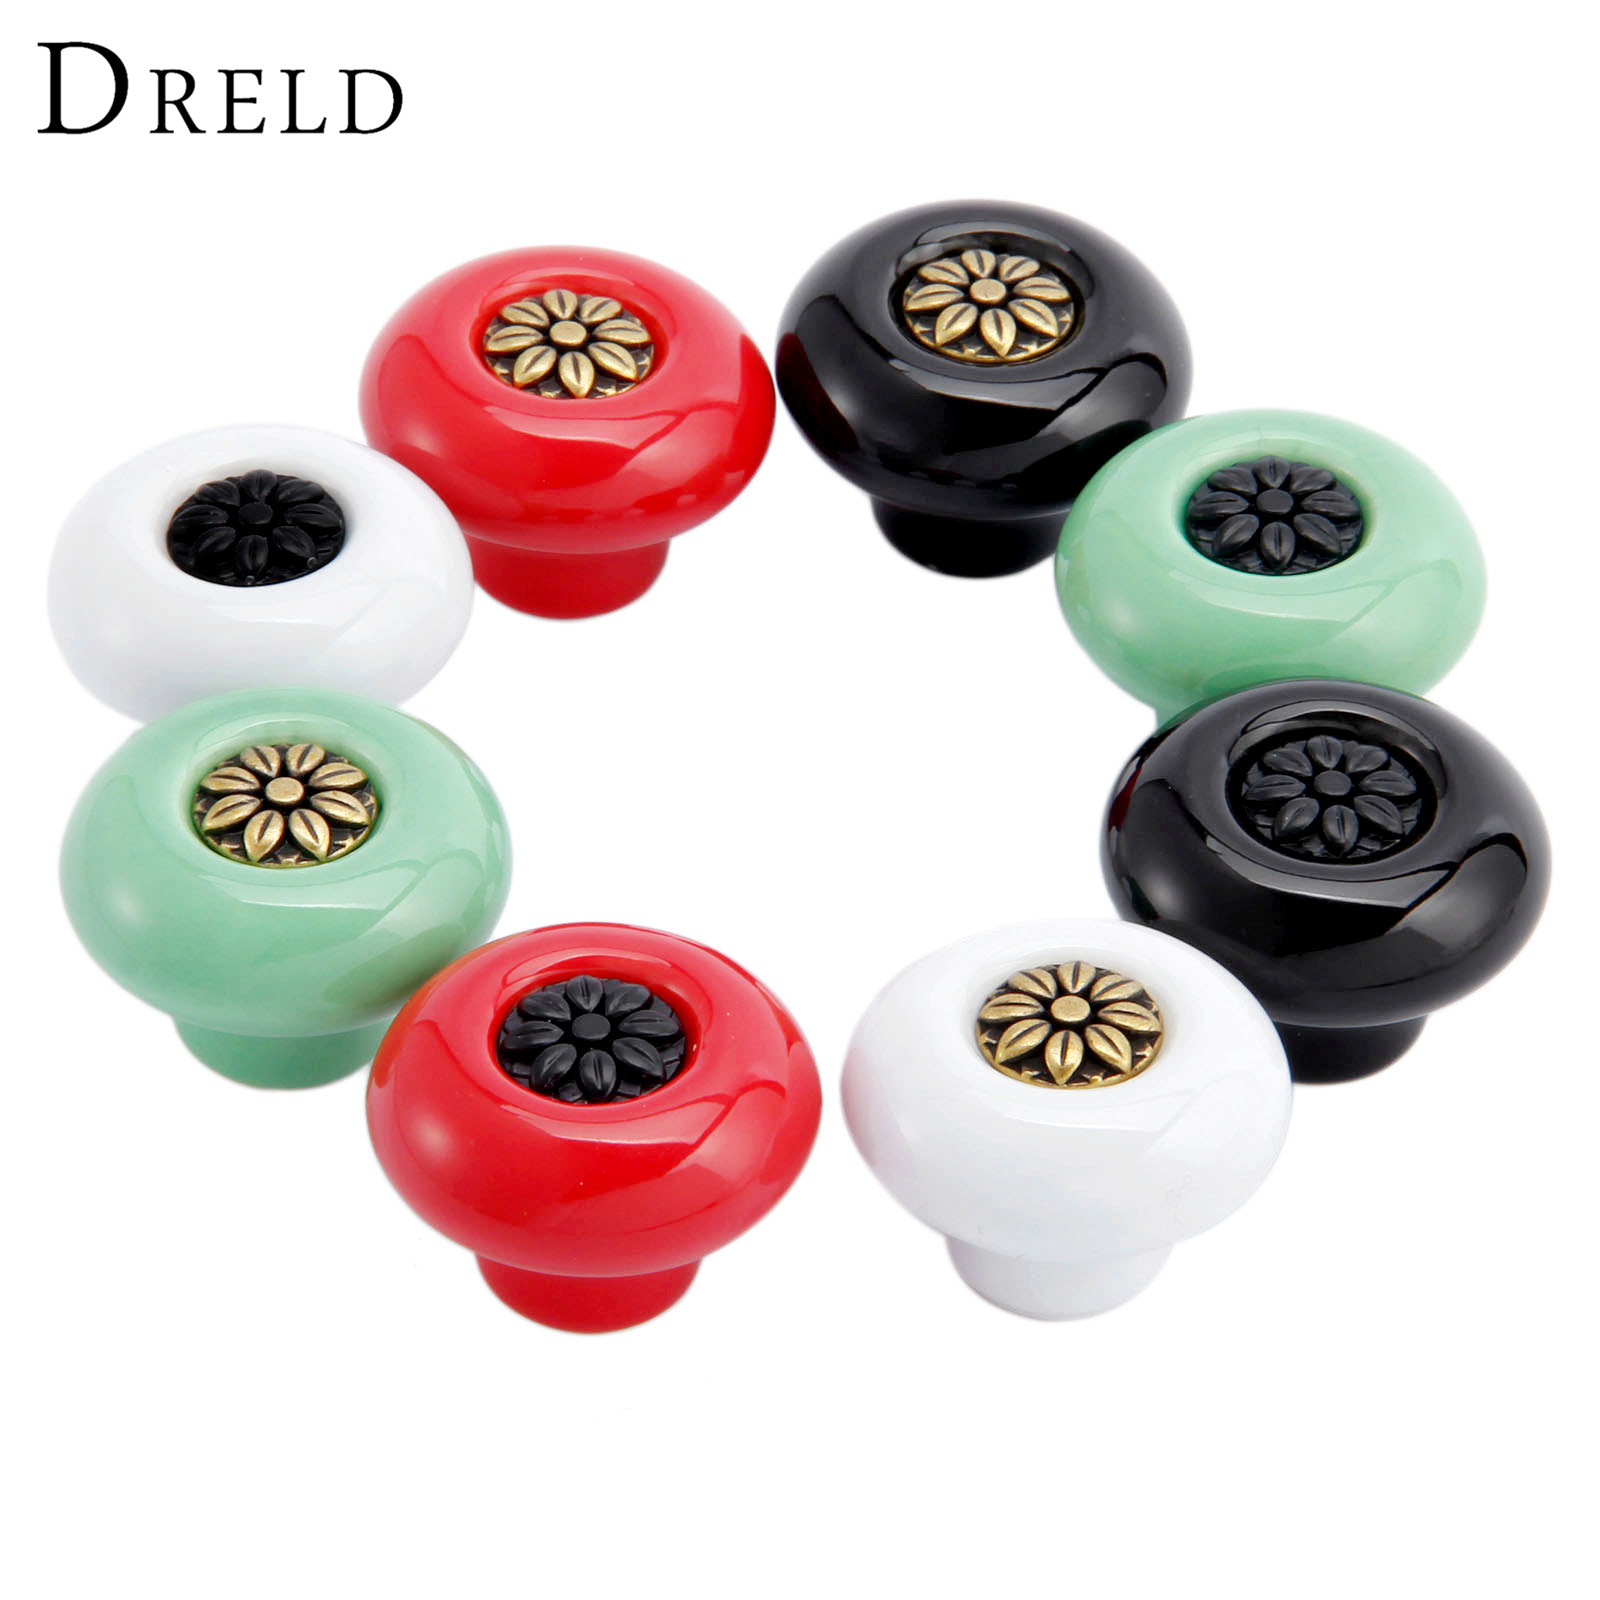 DRELD 8Pcs Furniture Handle Ceramic Door Knob Cupboard Drawer Cabinet Knobs and Handles Kitchen Pull Handle Furniture Hardware pastoralism pumpkin ceramic knob kitchen ceramic door cabinets cupboard knob and handles 1pcs